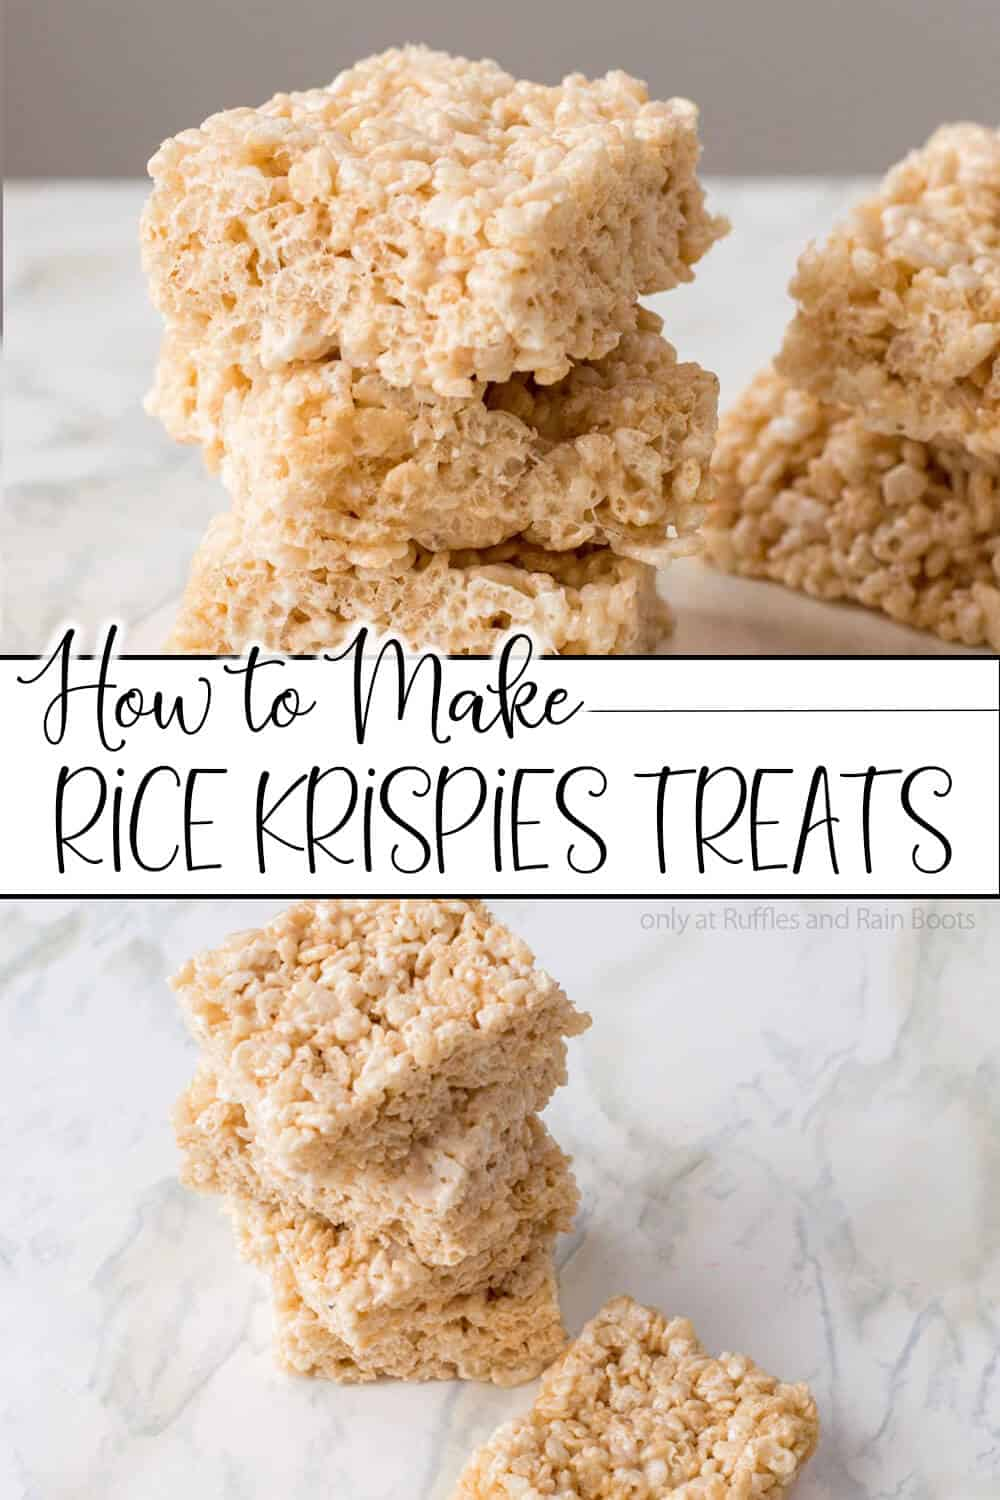 photo collage of easy rice crispy treats with text which reads how to make rice krispies treats